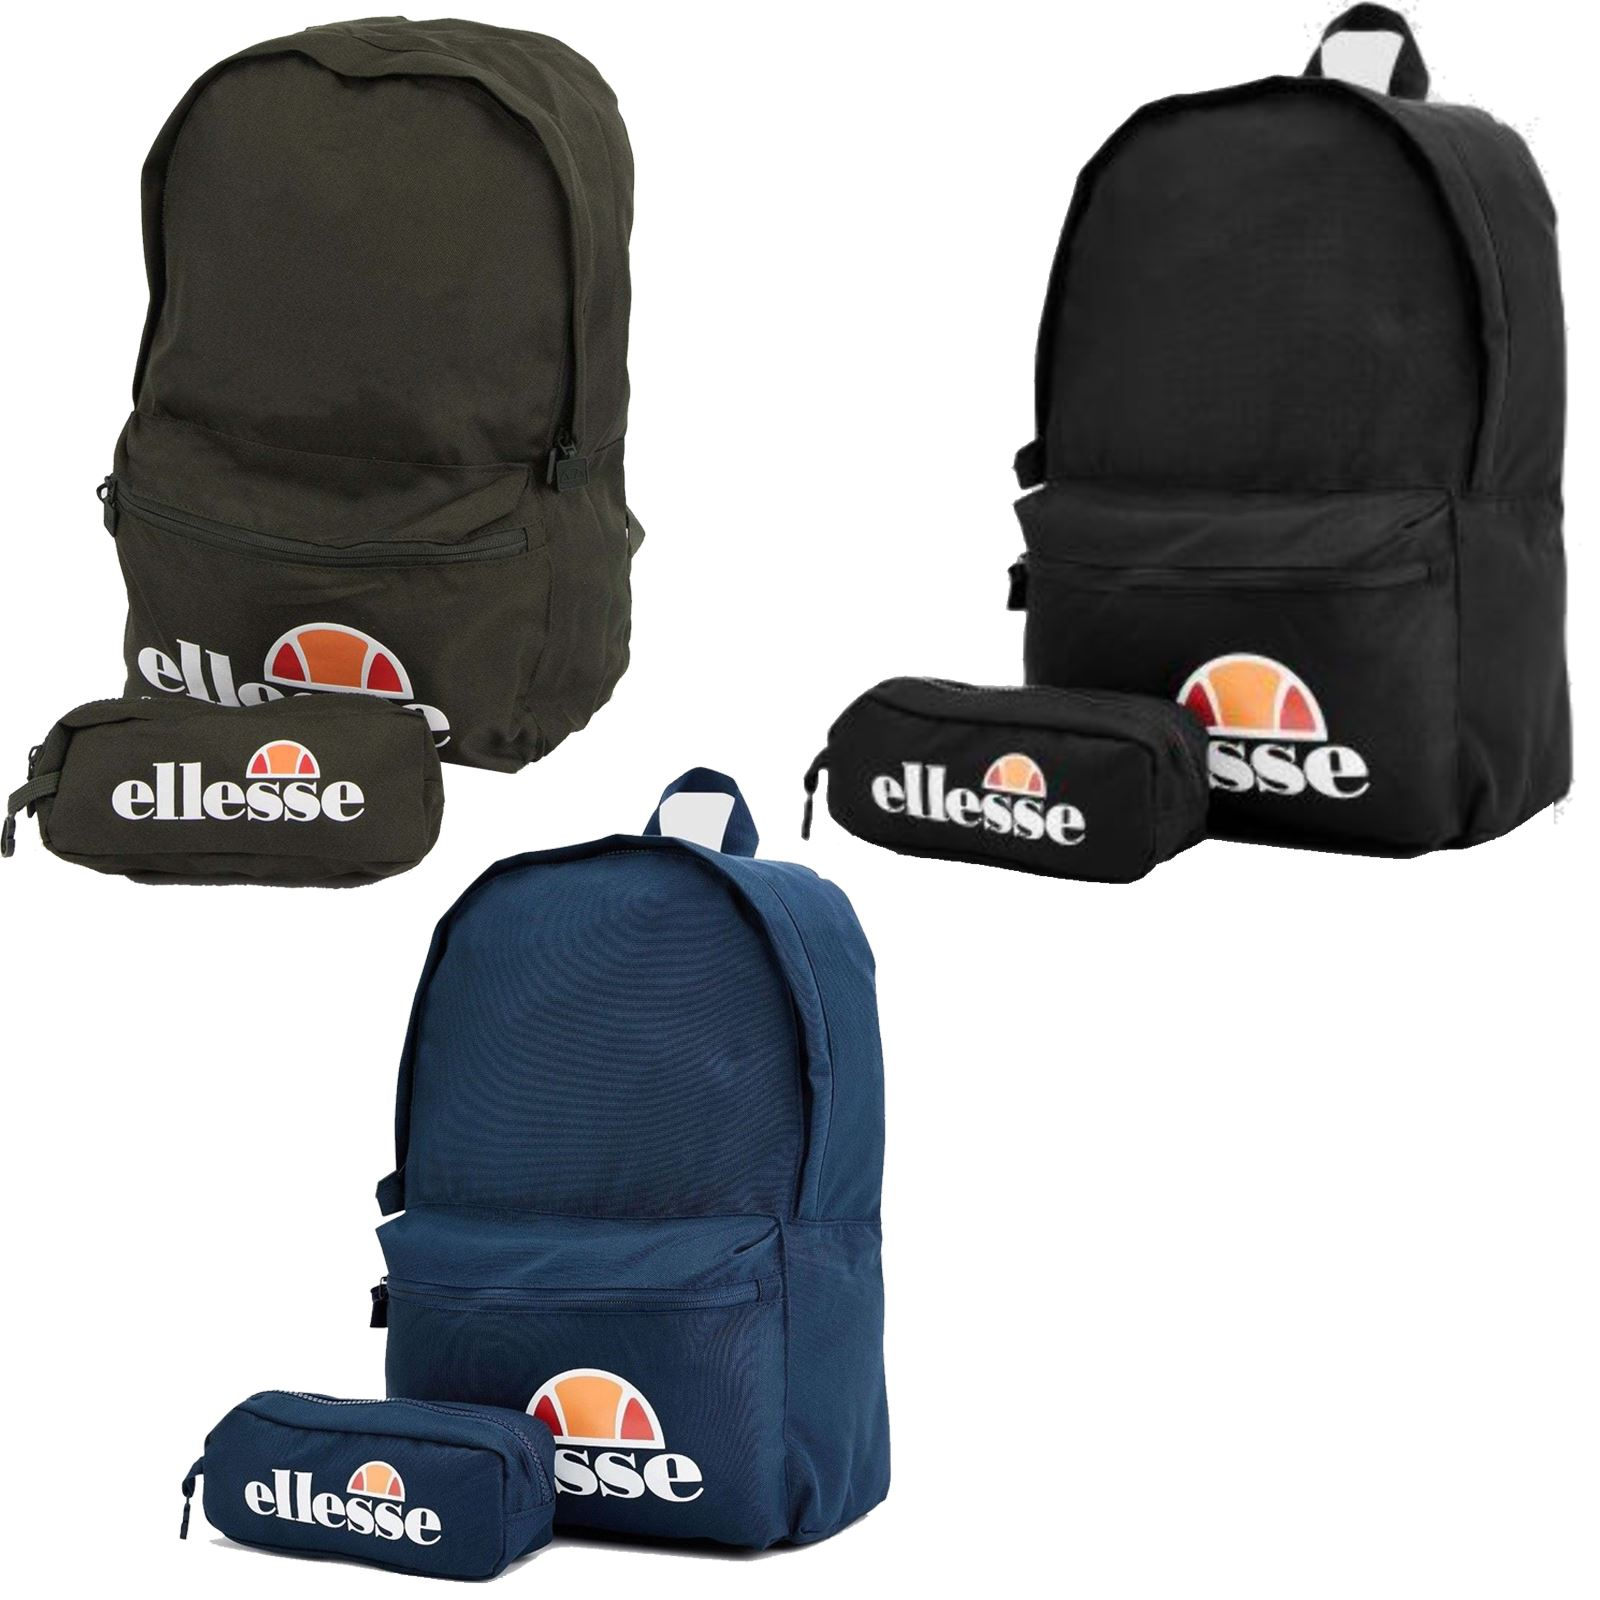 Details about Ellesse Rolby Backpack Back to School Bag Rucksack with Pencil  Case SAAY0591 2a204049b7